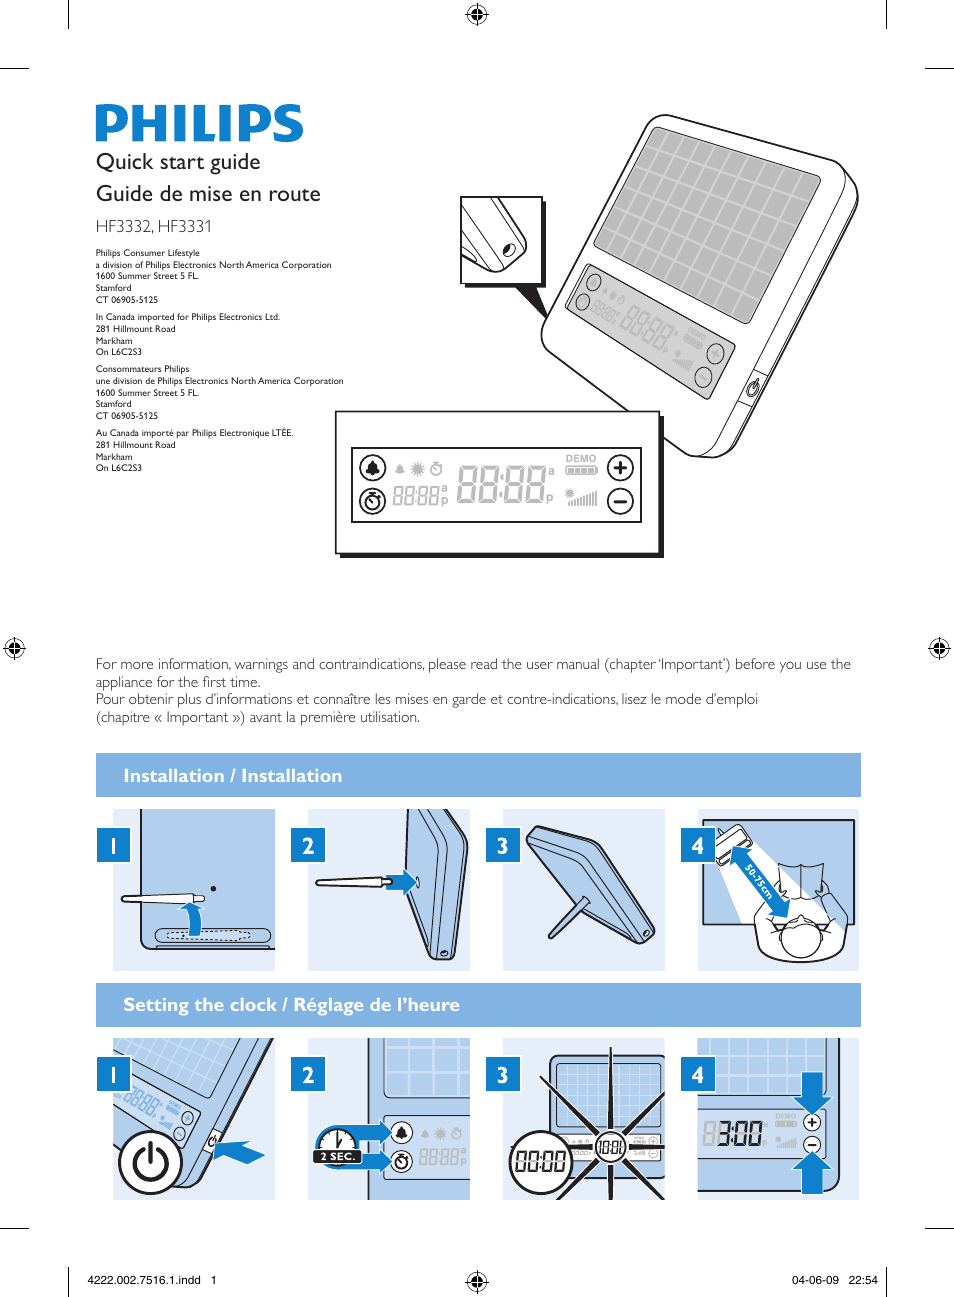 philips golite blu hf3332 user manual 2 pages also for hf3332 60 rh manualsdir com philips golite blu hf3332 manual Philips goLITE Directions